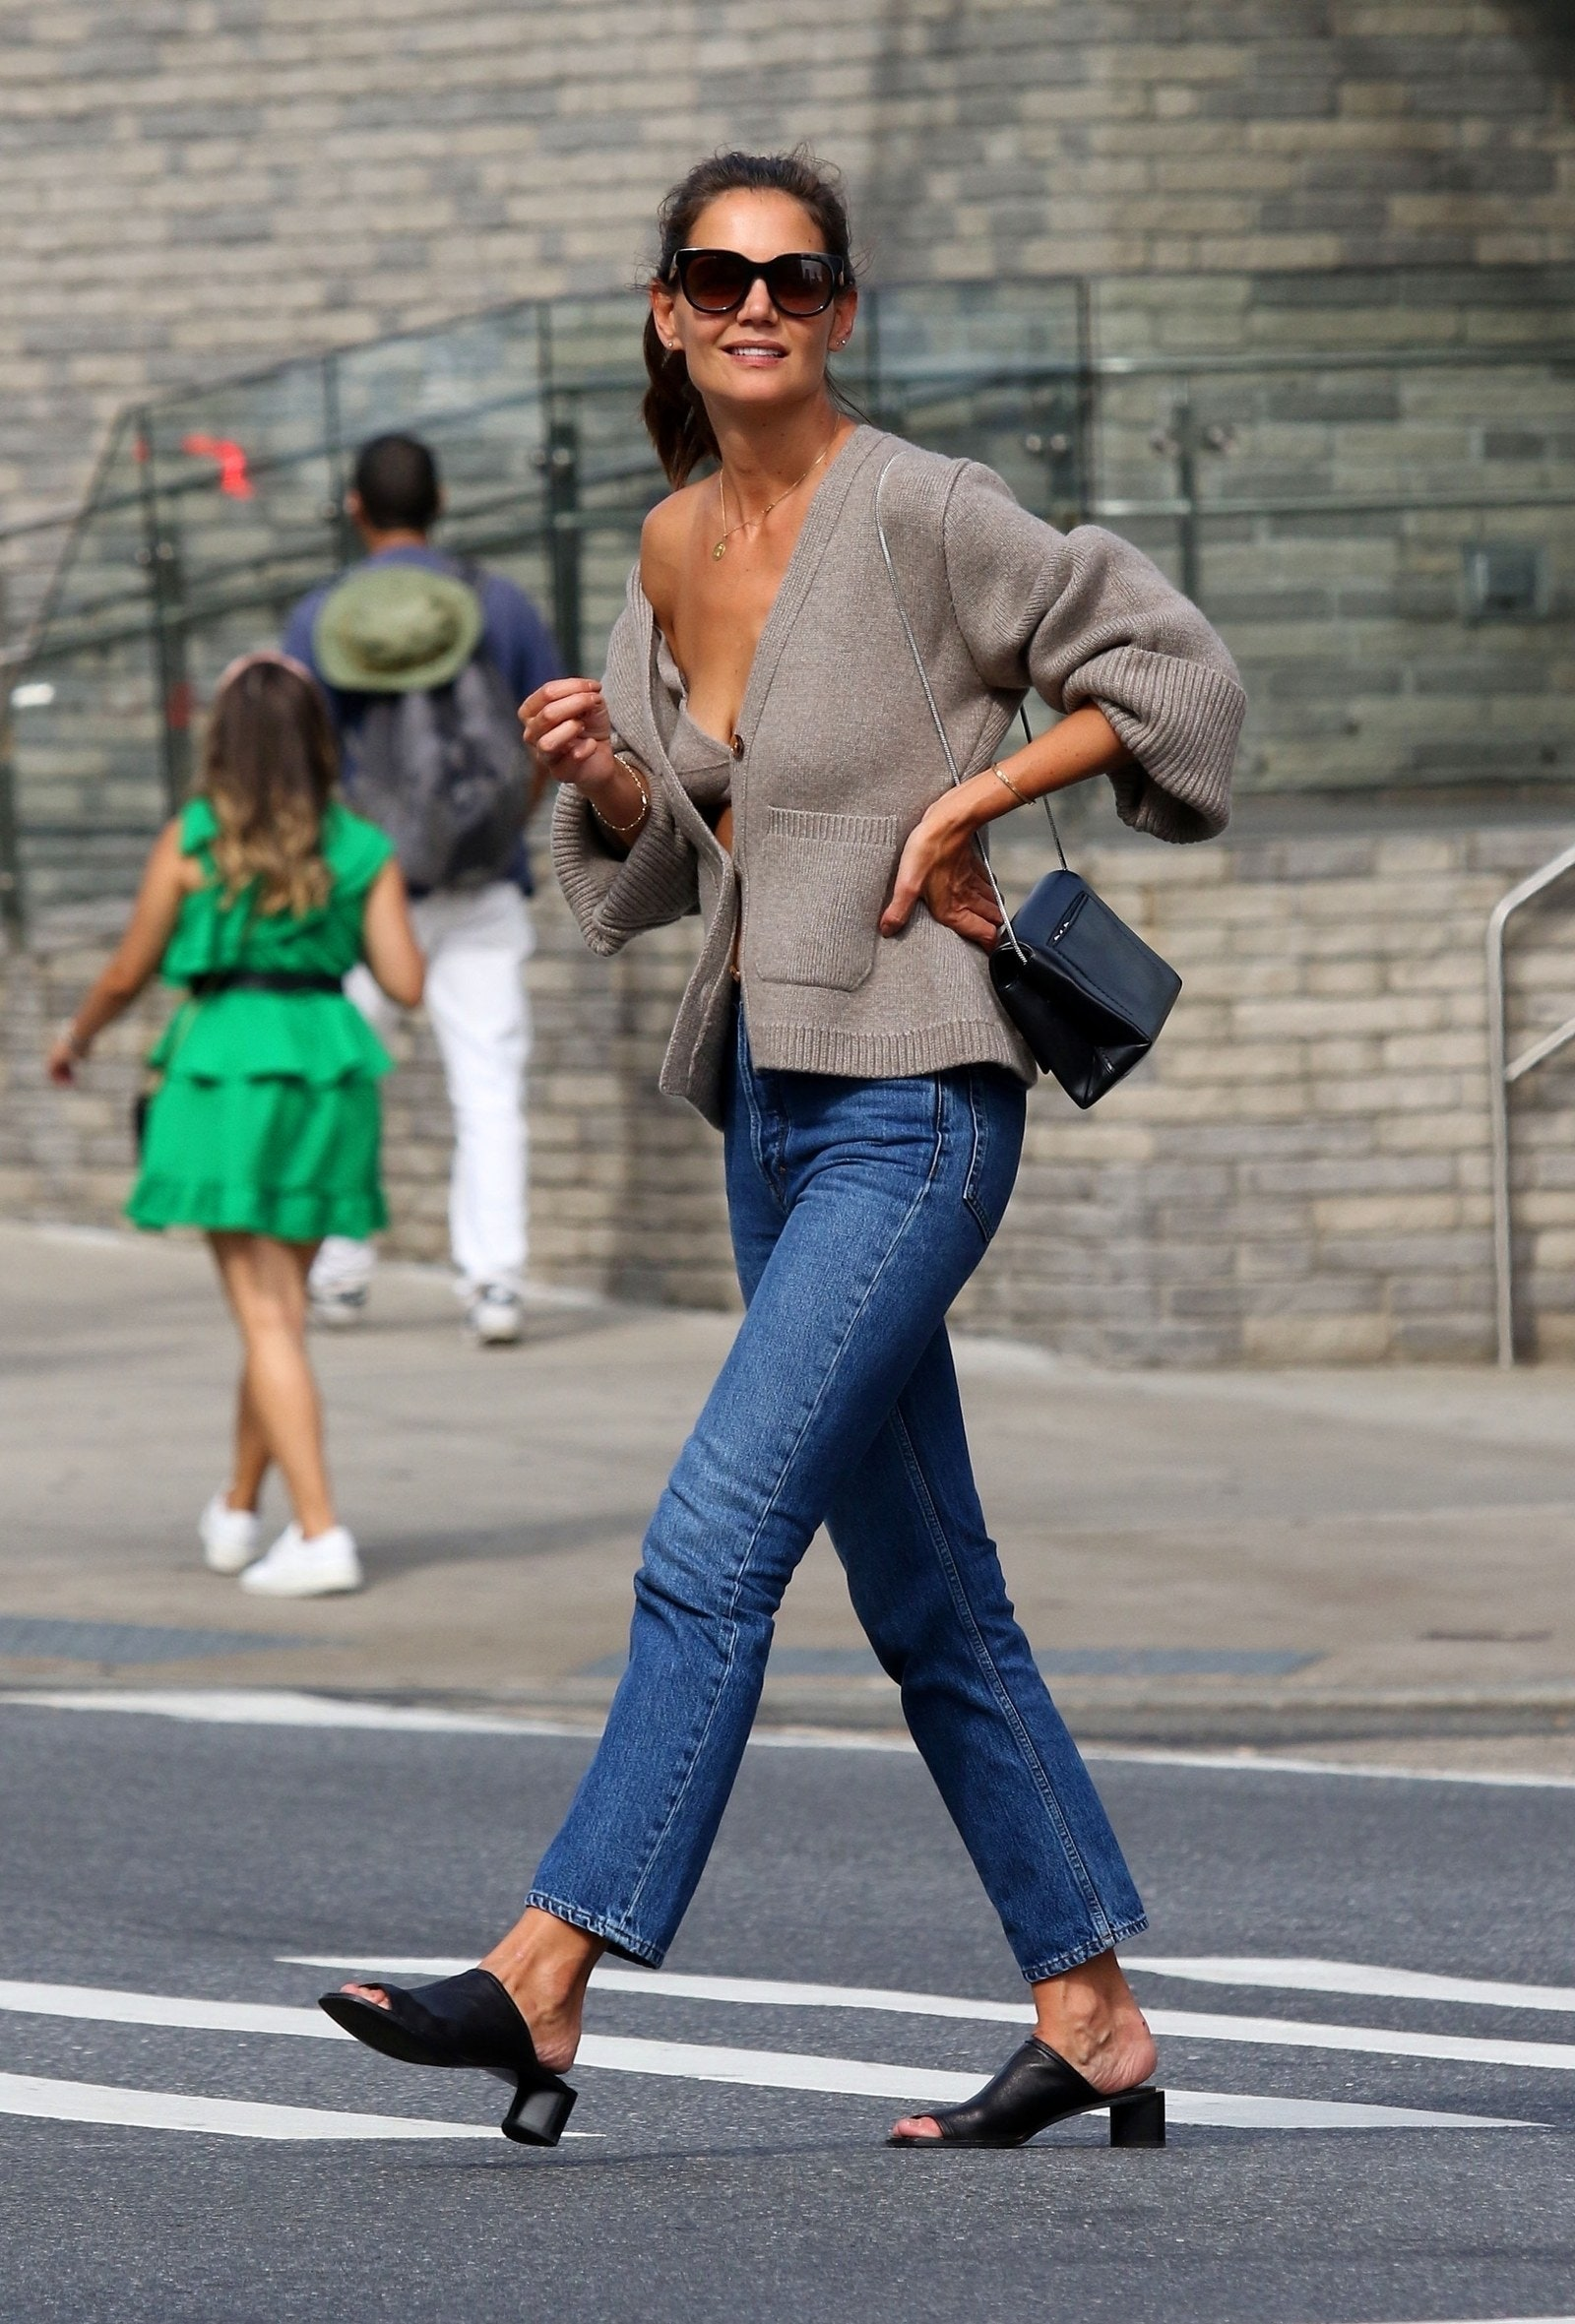 Katie Holmes in a cashmere cardigan and bra